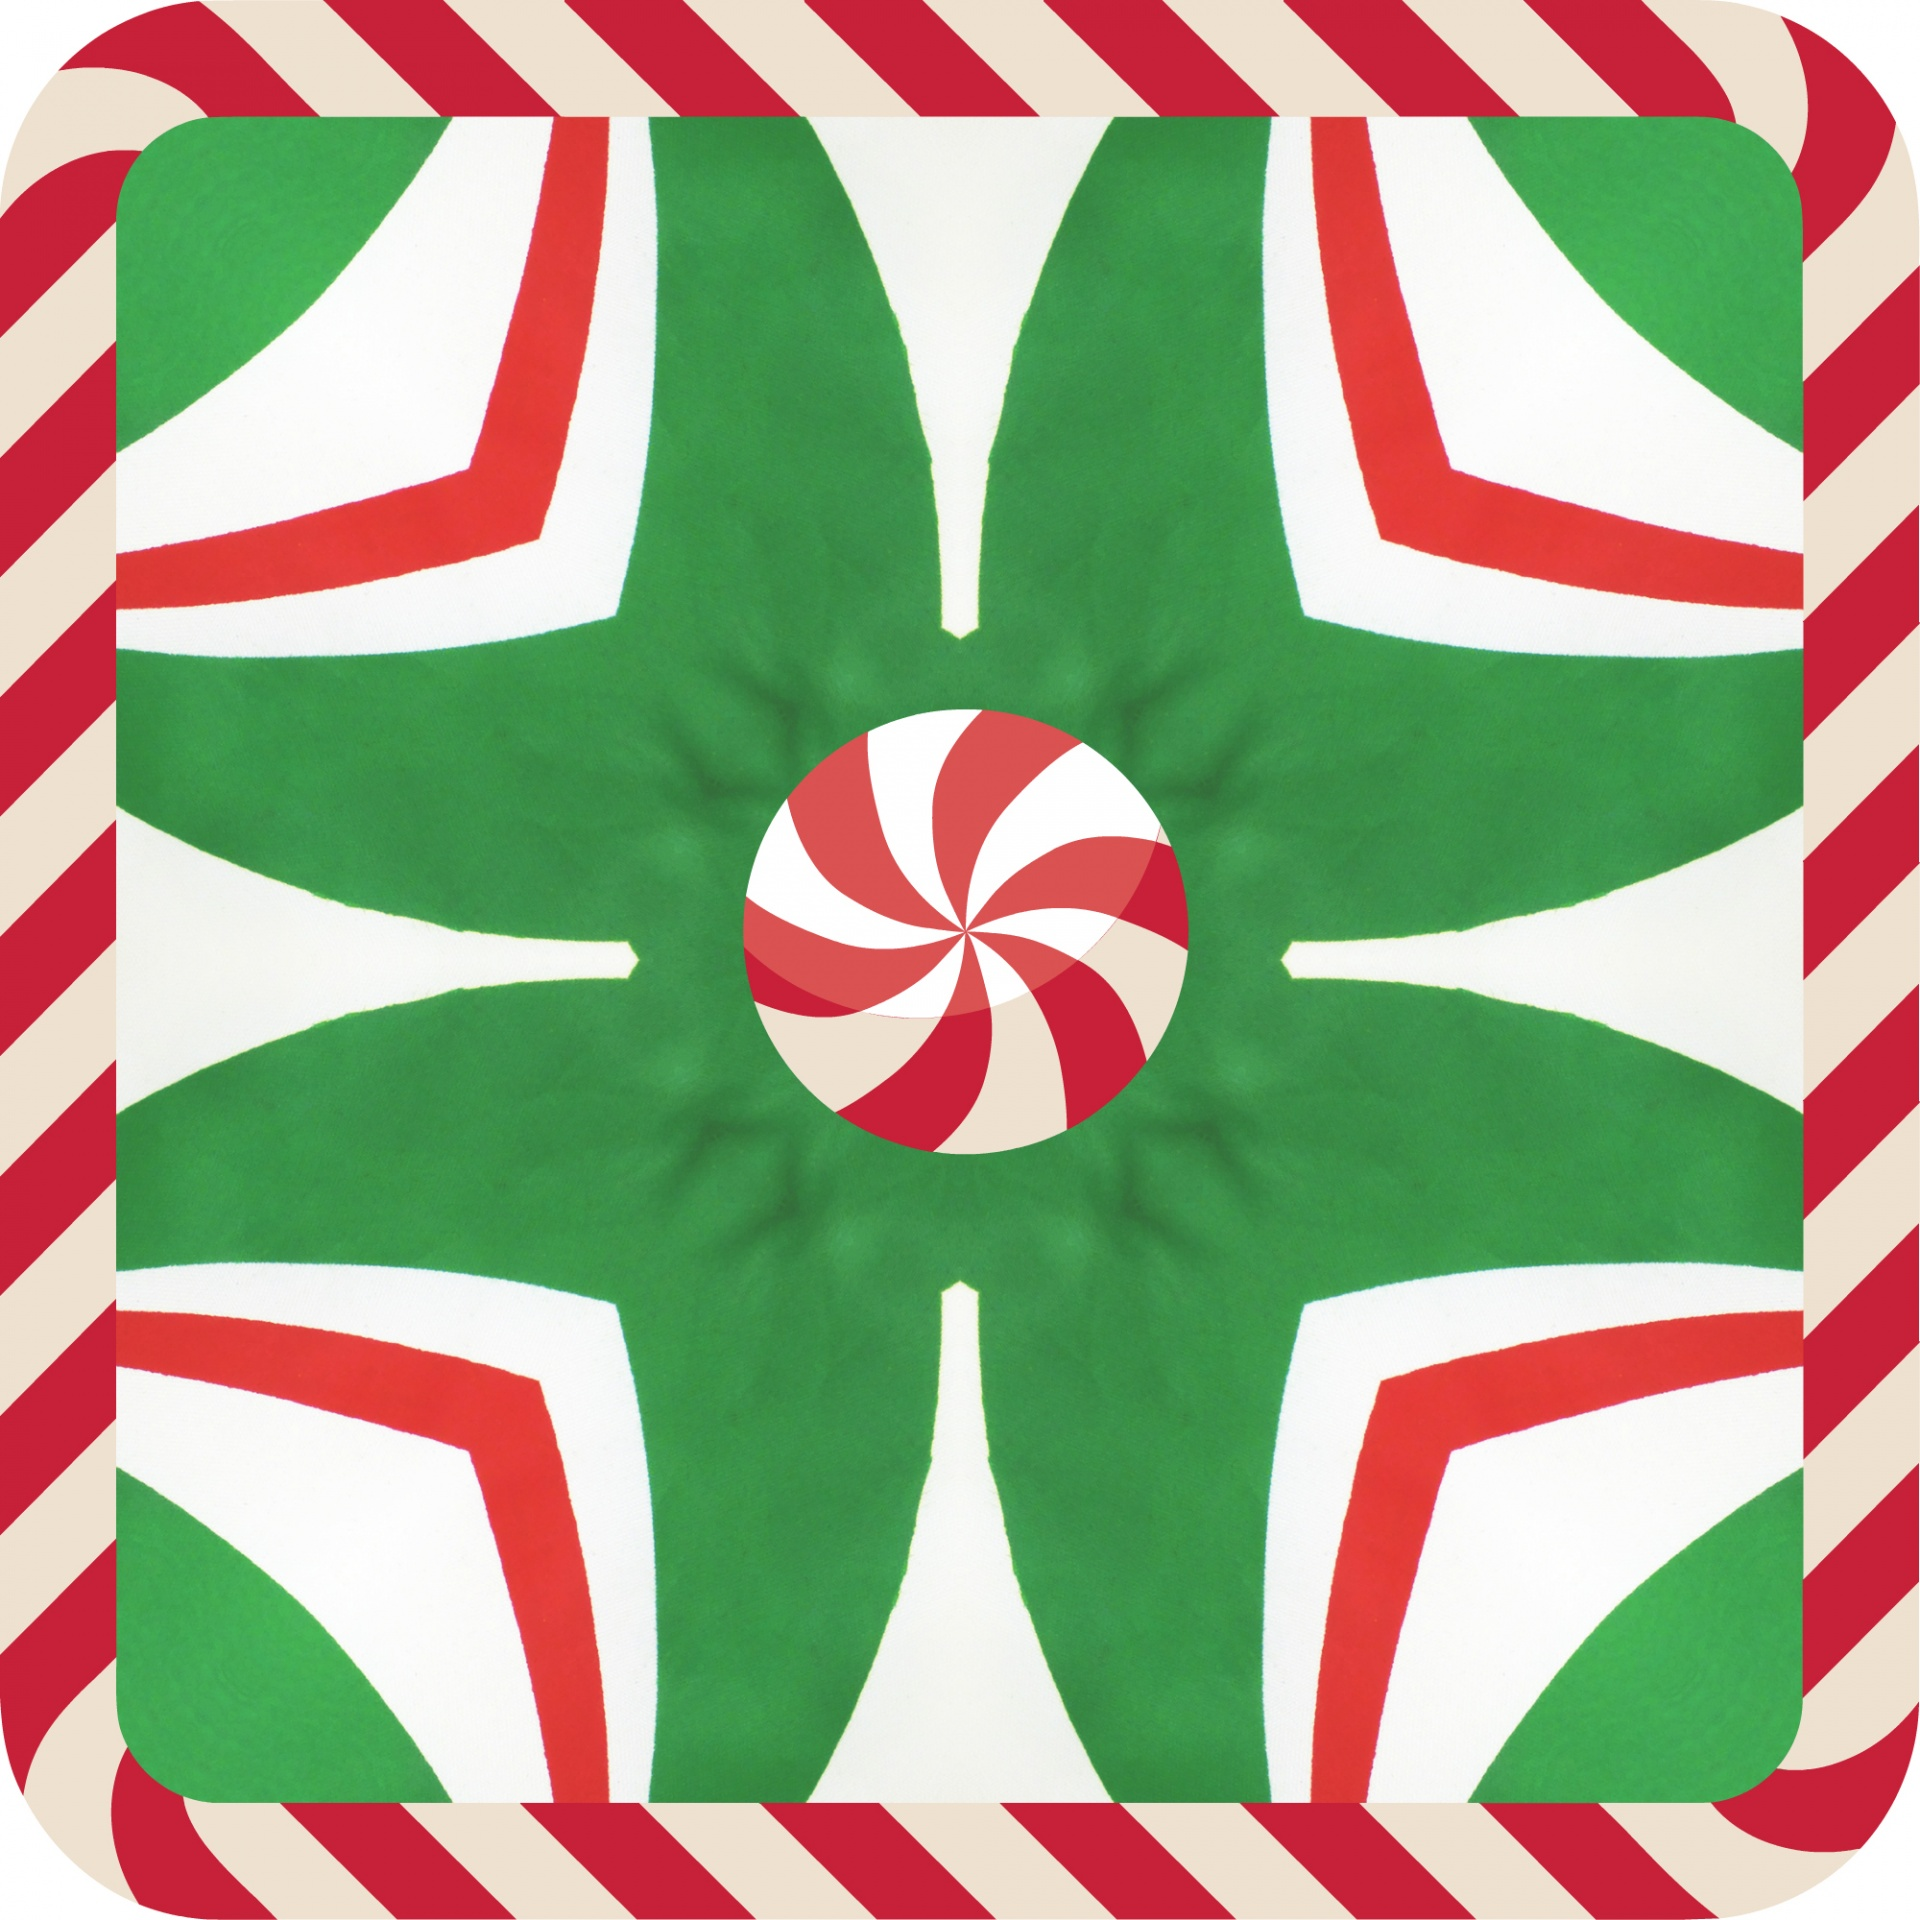 1920x1920 Candy Cane Kaleidoscope Free Stock Photo